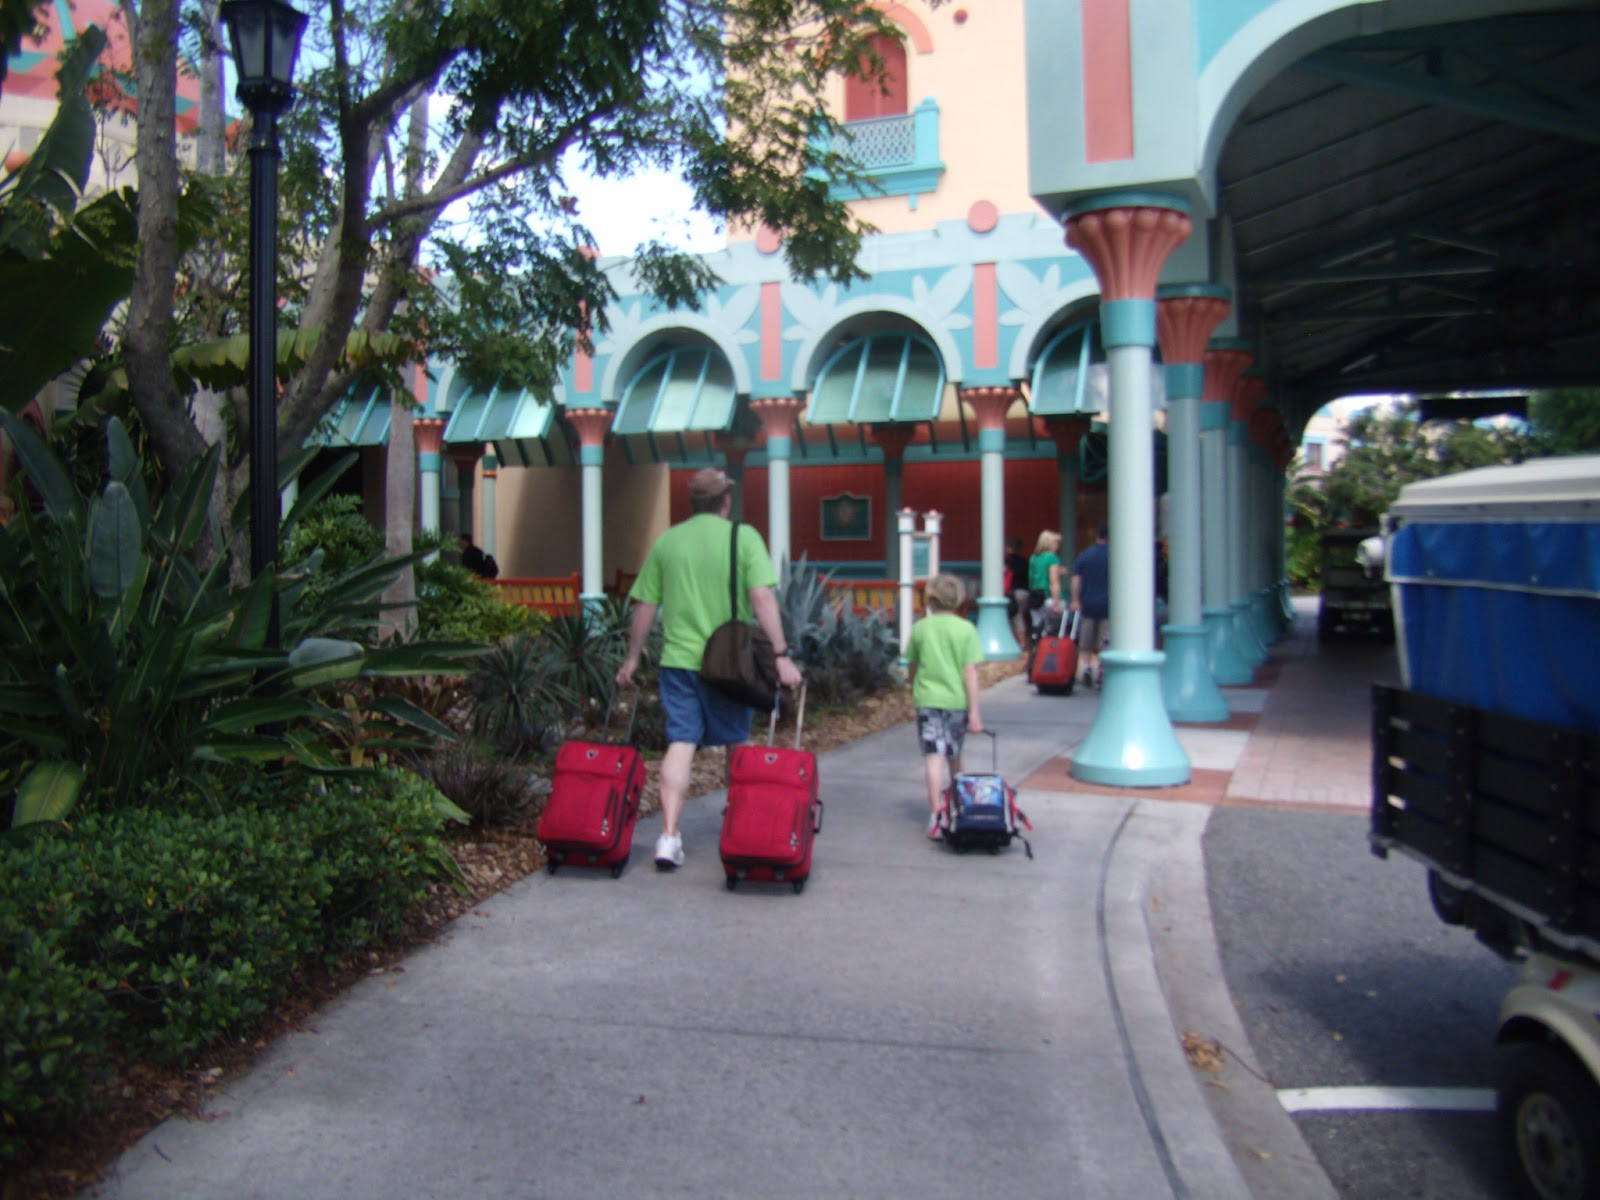 Williams Family: Bell Services at Walt Disney World Resorts